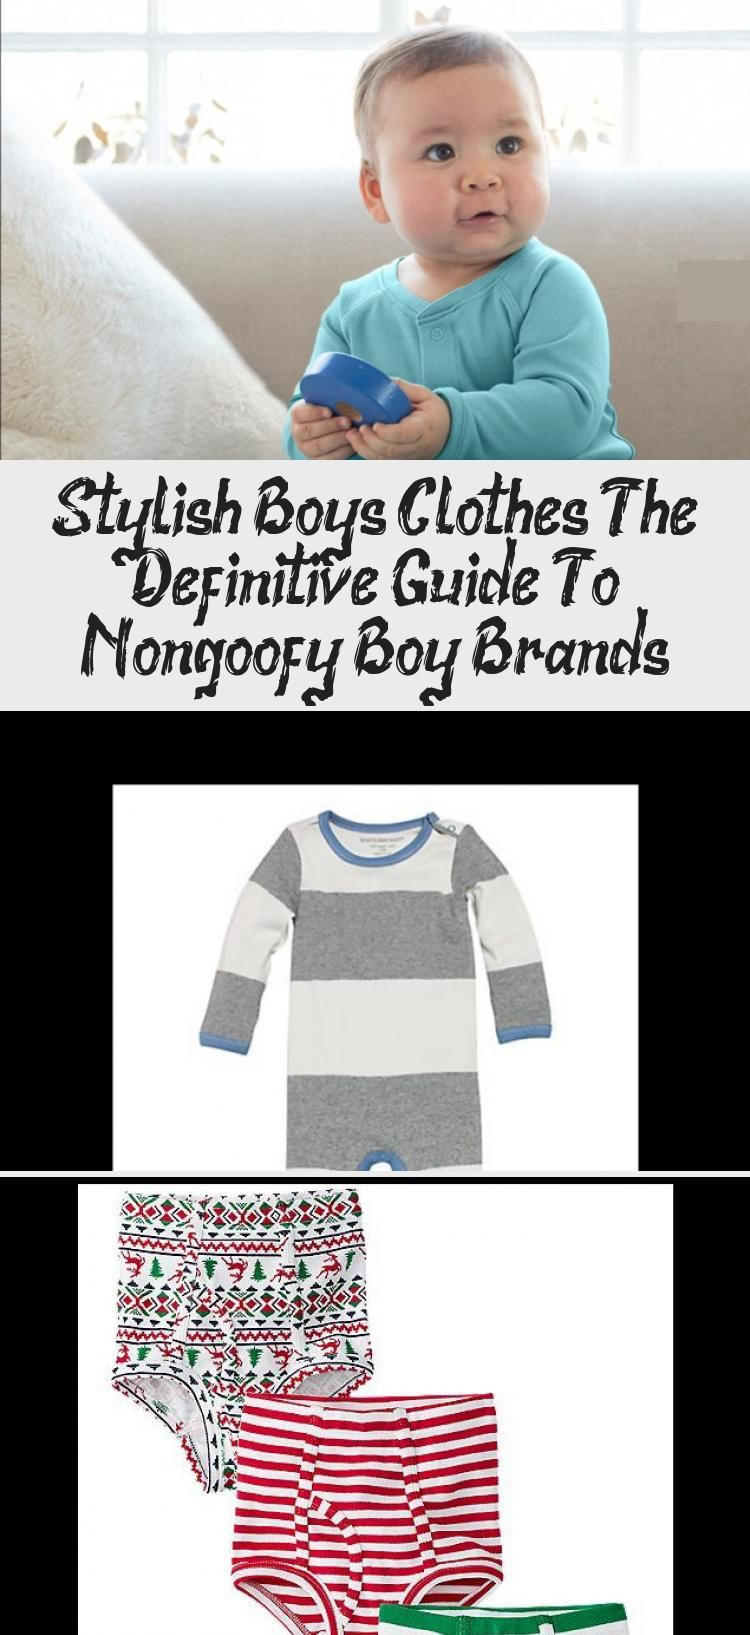 Stylish Boys Clothes The Definitive Guide To Non Goofy Boy Brands In 2020 Stylish Boys Stylish Boy Clothes Boy Outfits